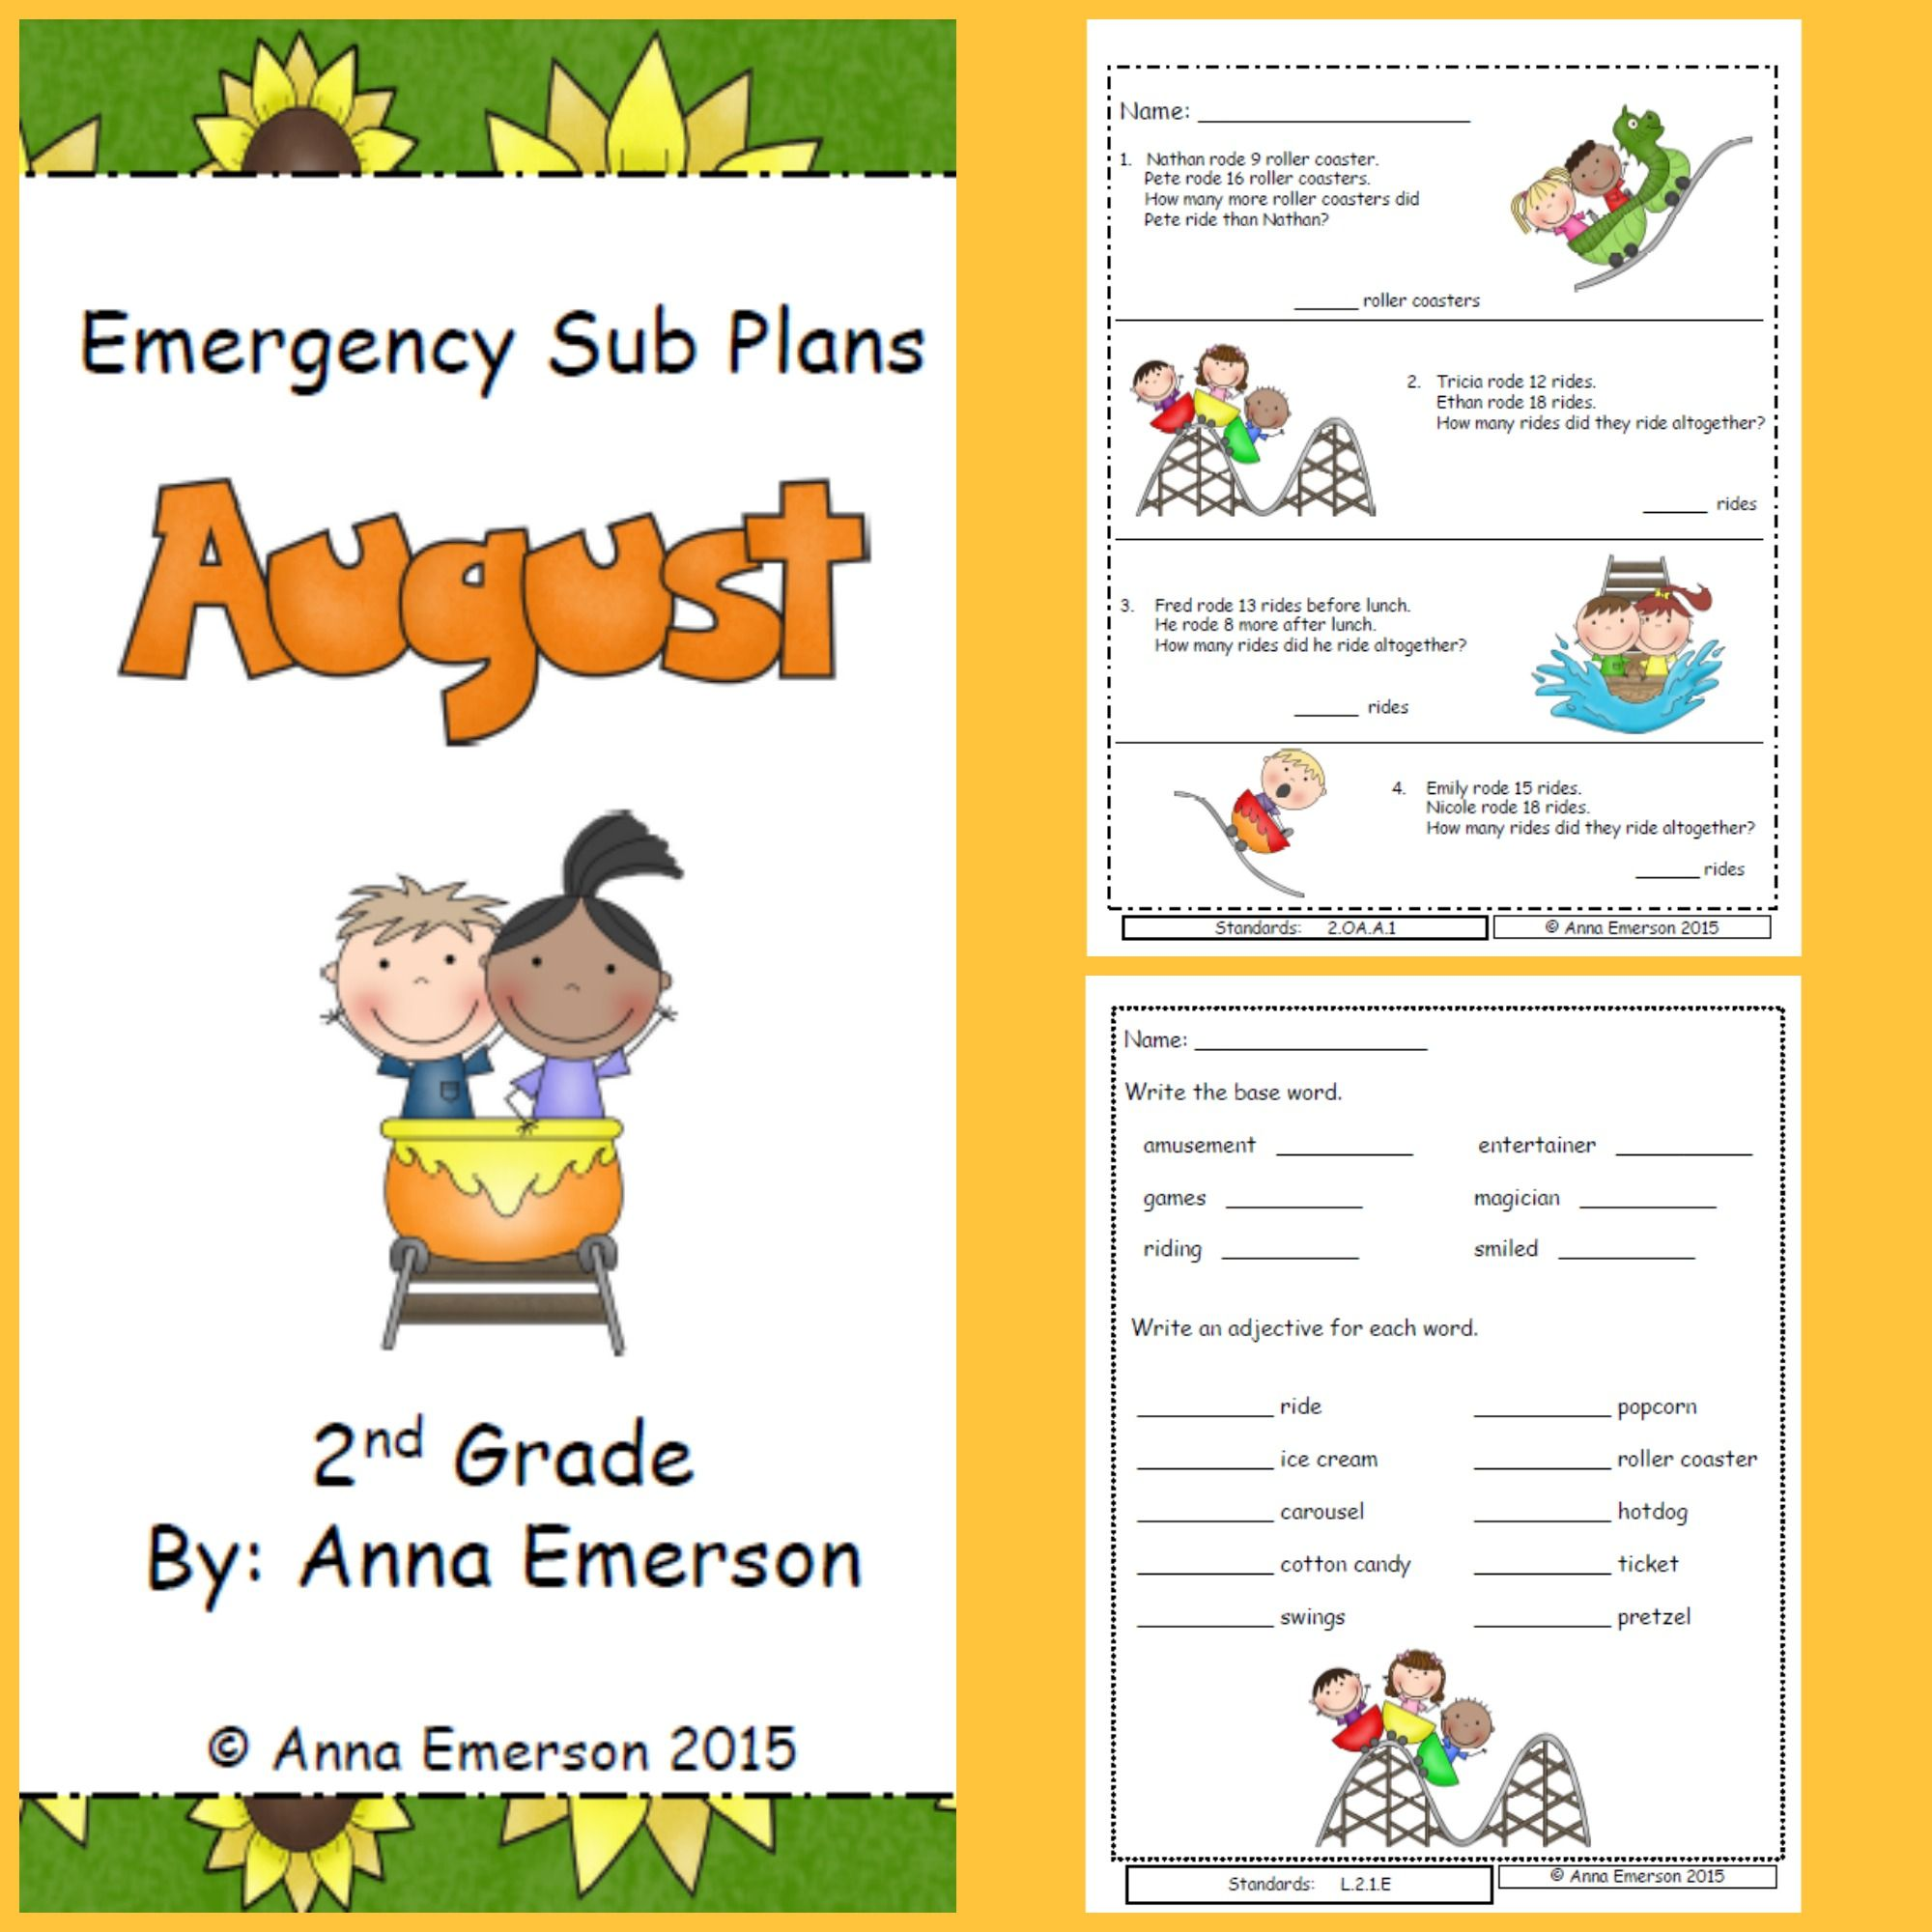 Emergency Sub Plans August For Second Grade